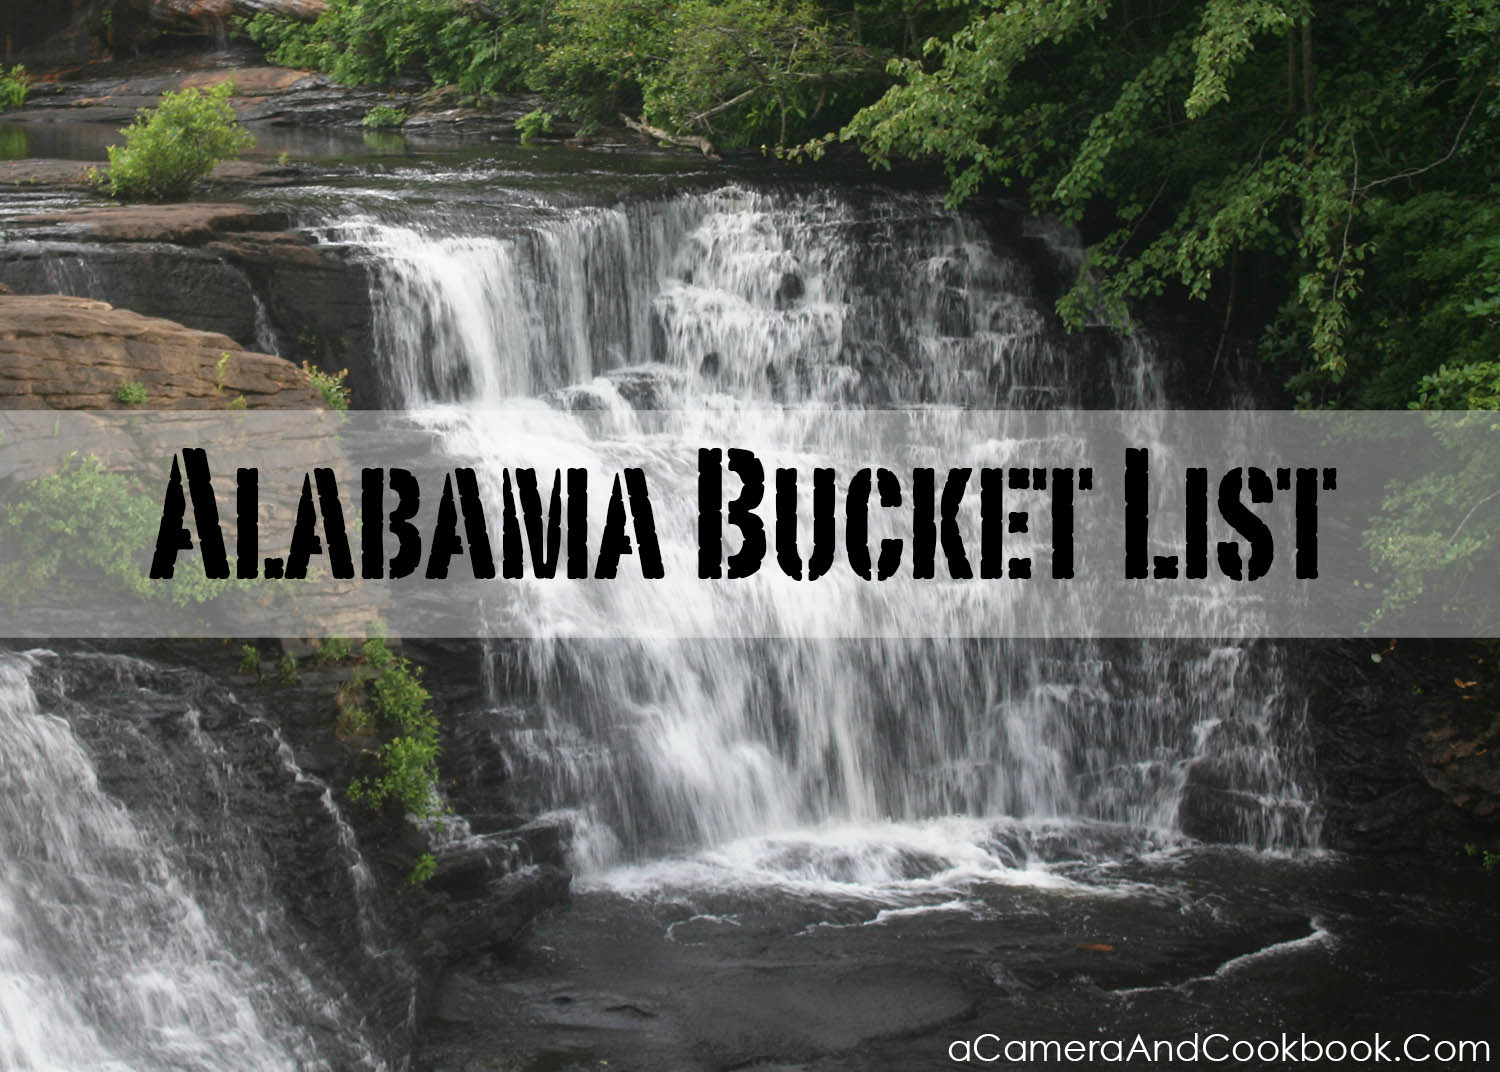 50+ Things to do in Alabama - What's on your Alabama Bucket List?